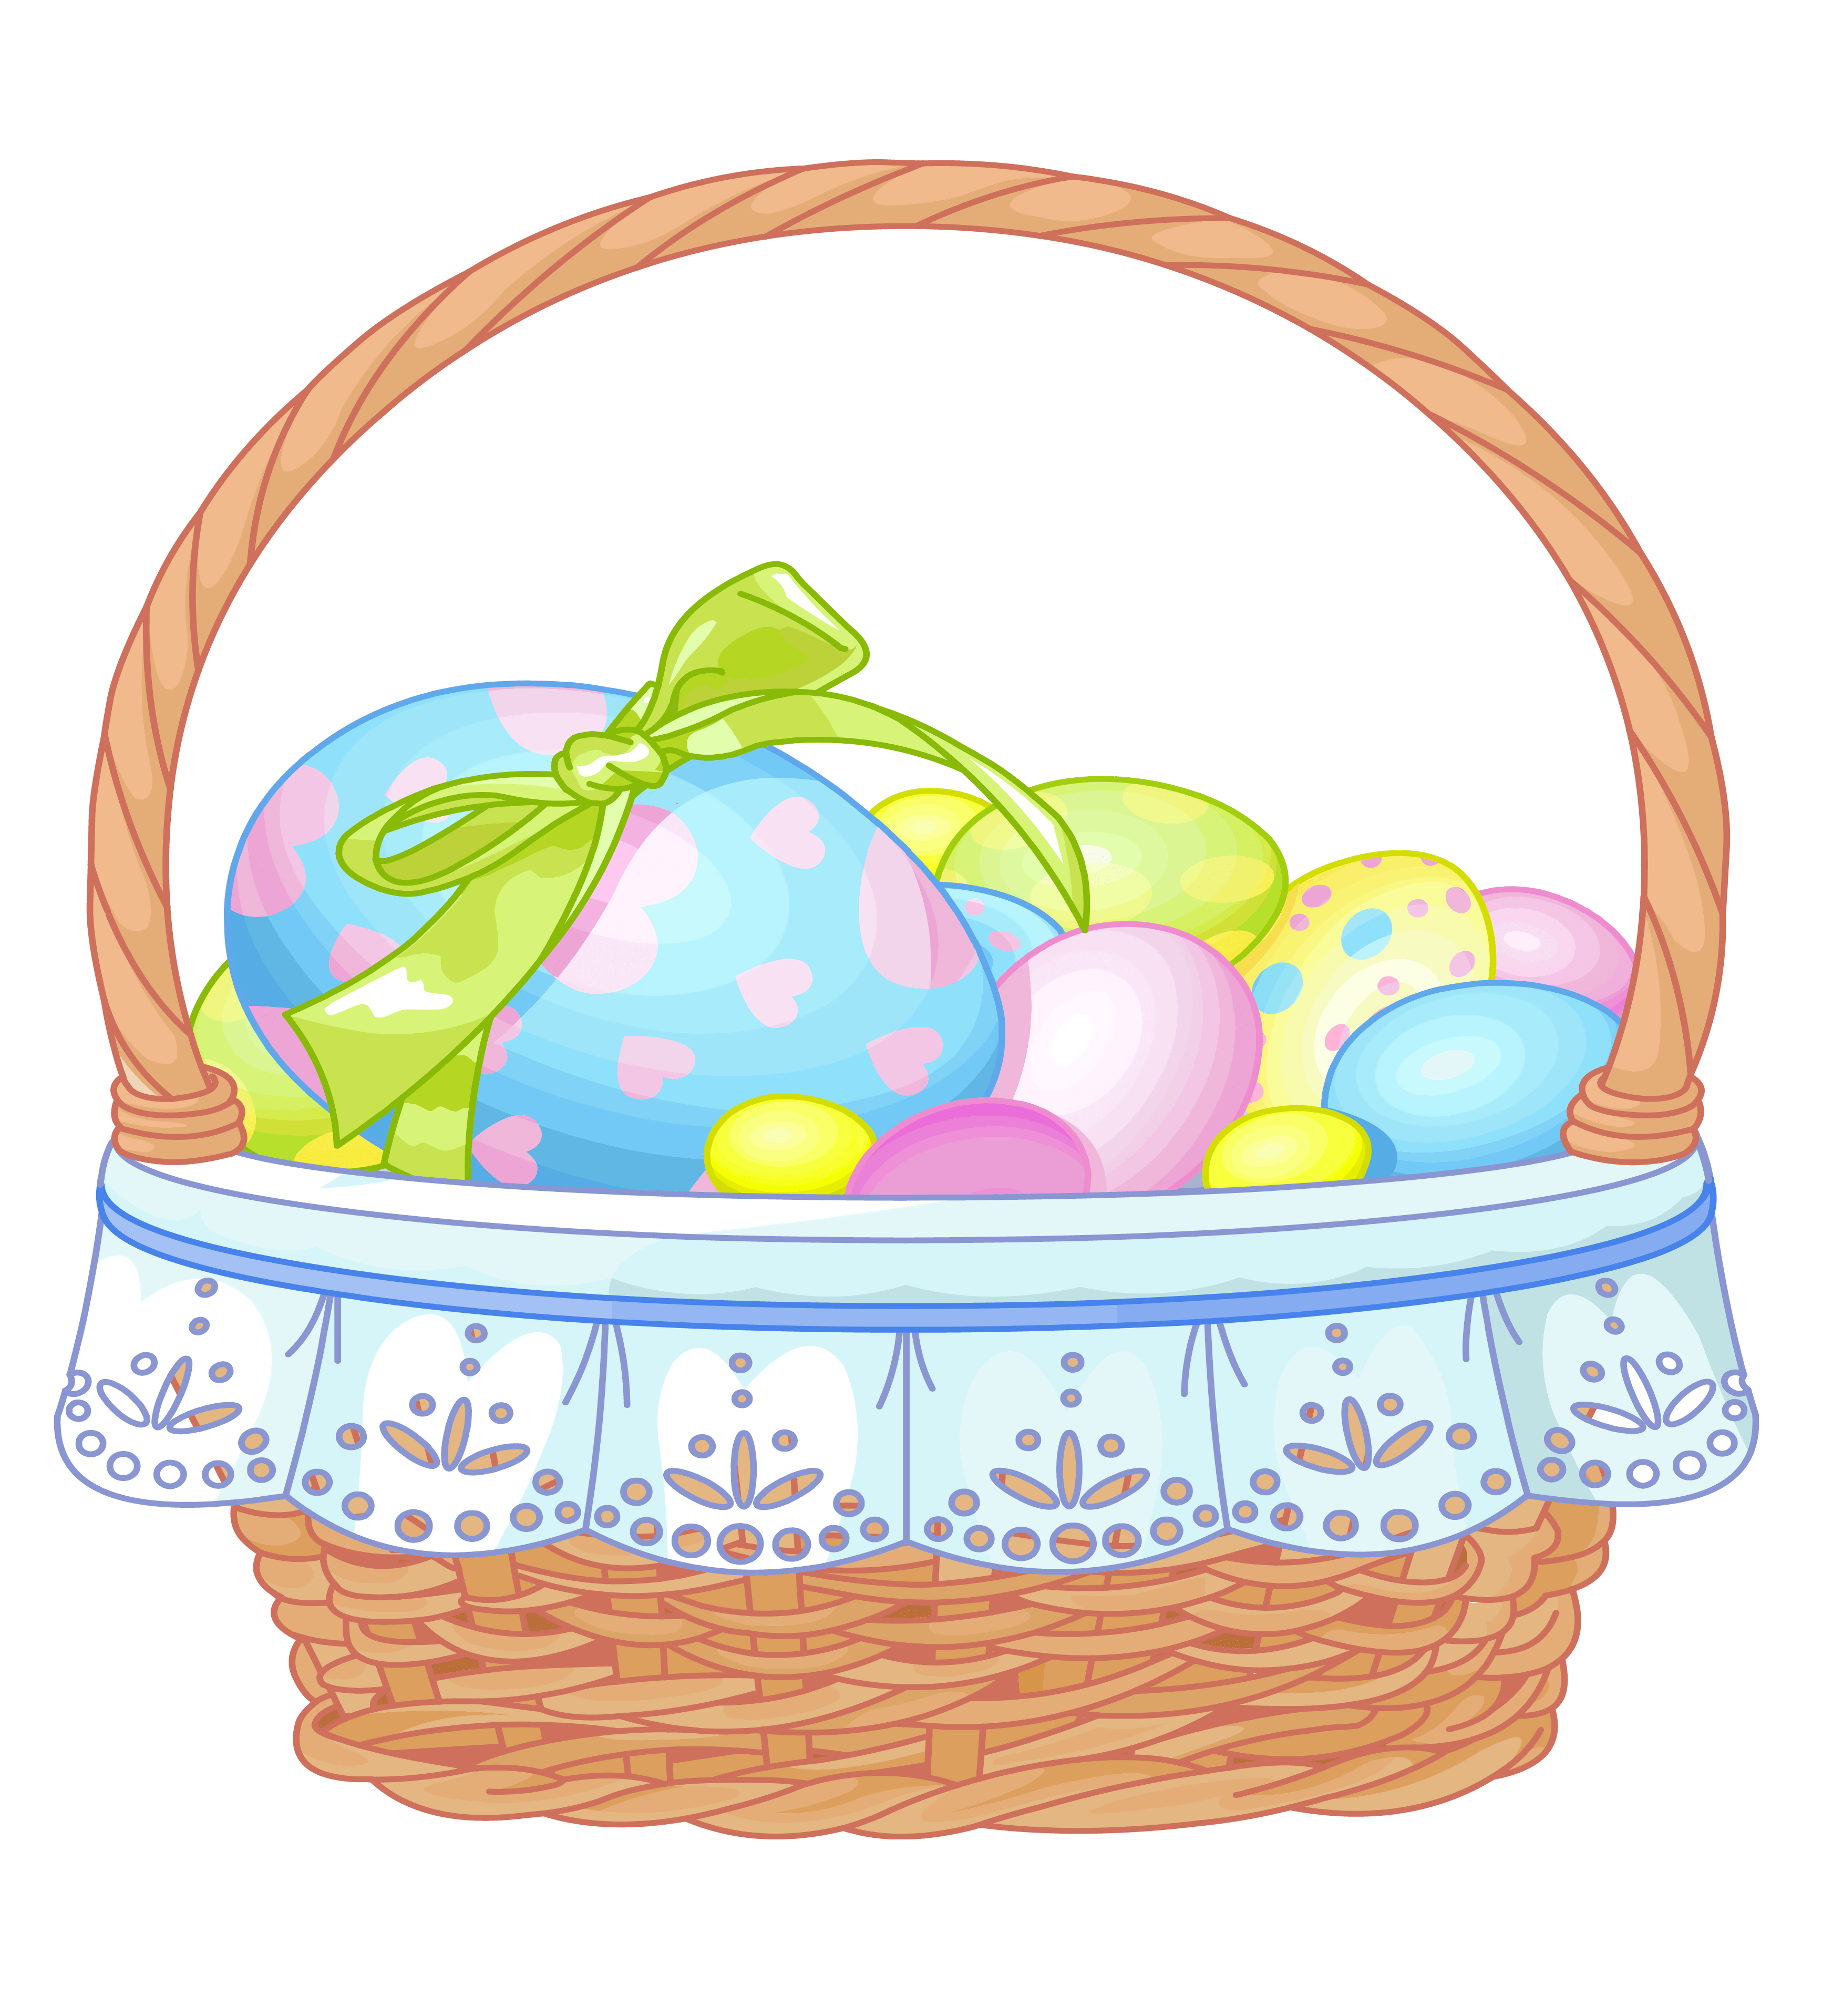 Easter Egg Basket Clip Art – Merry Christmas And Happy New Year 2018 svg download